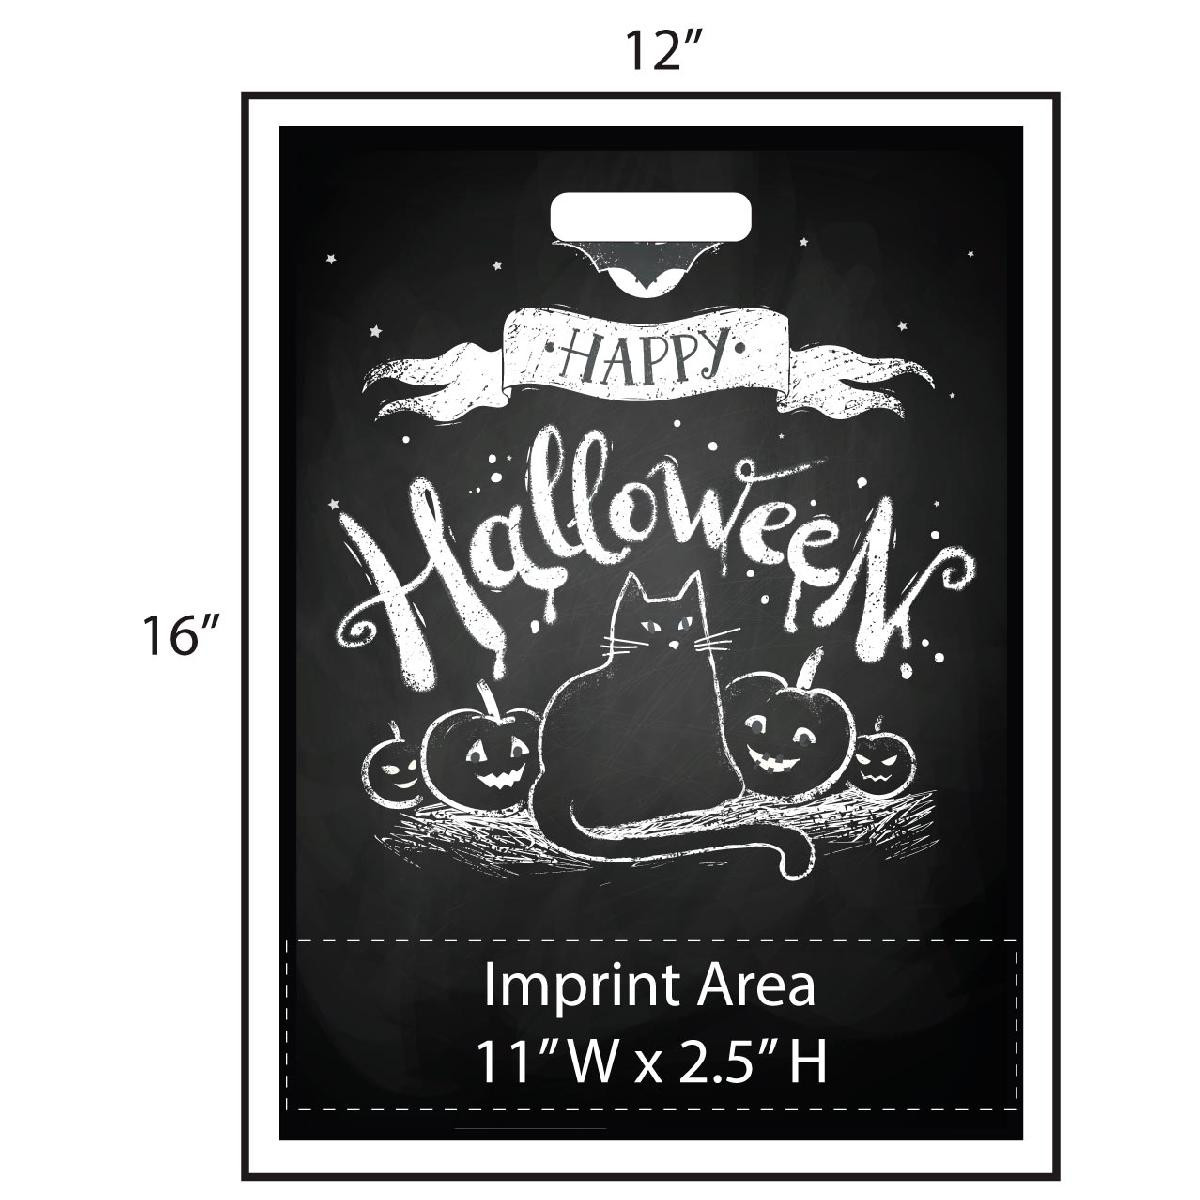 Retro Chalkboard Trick or Treat Bag - Exclusive Design